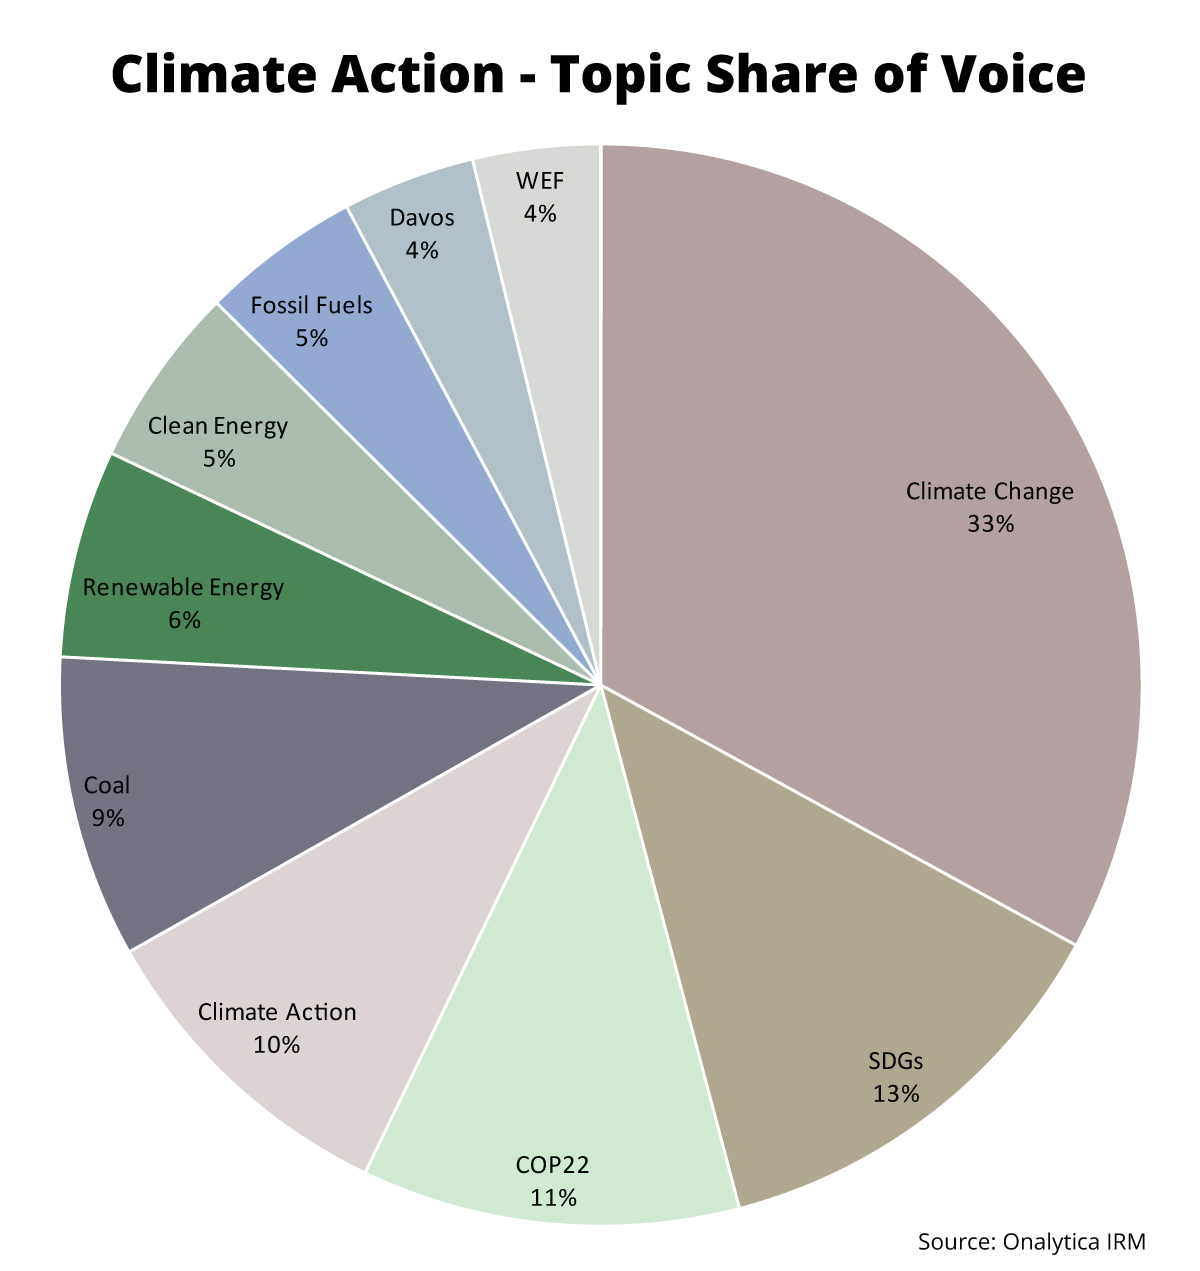 Onalytica - Climate Action Top 100 Influencers and Brands - Topic Share of Voice